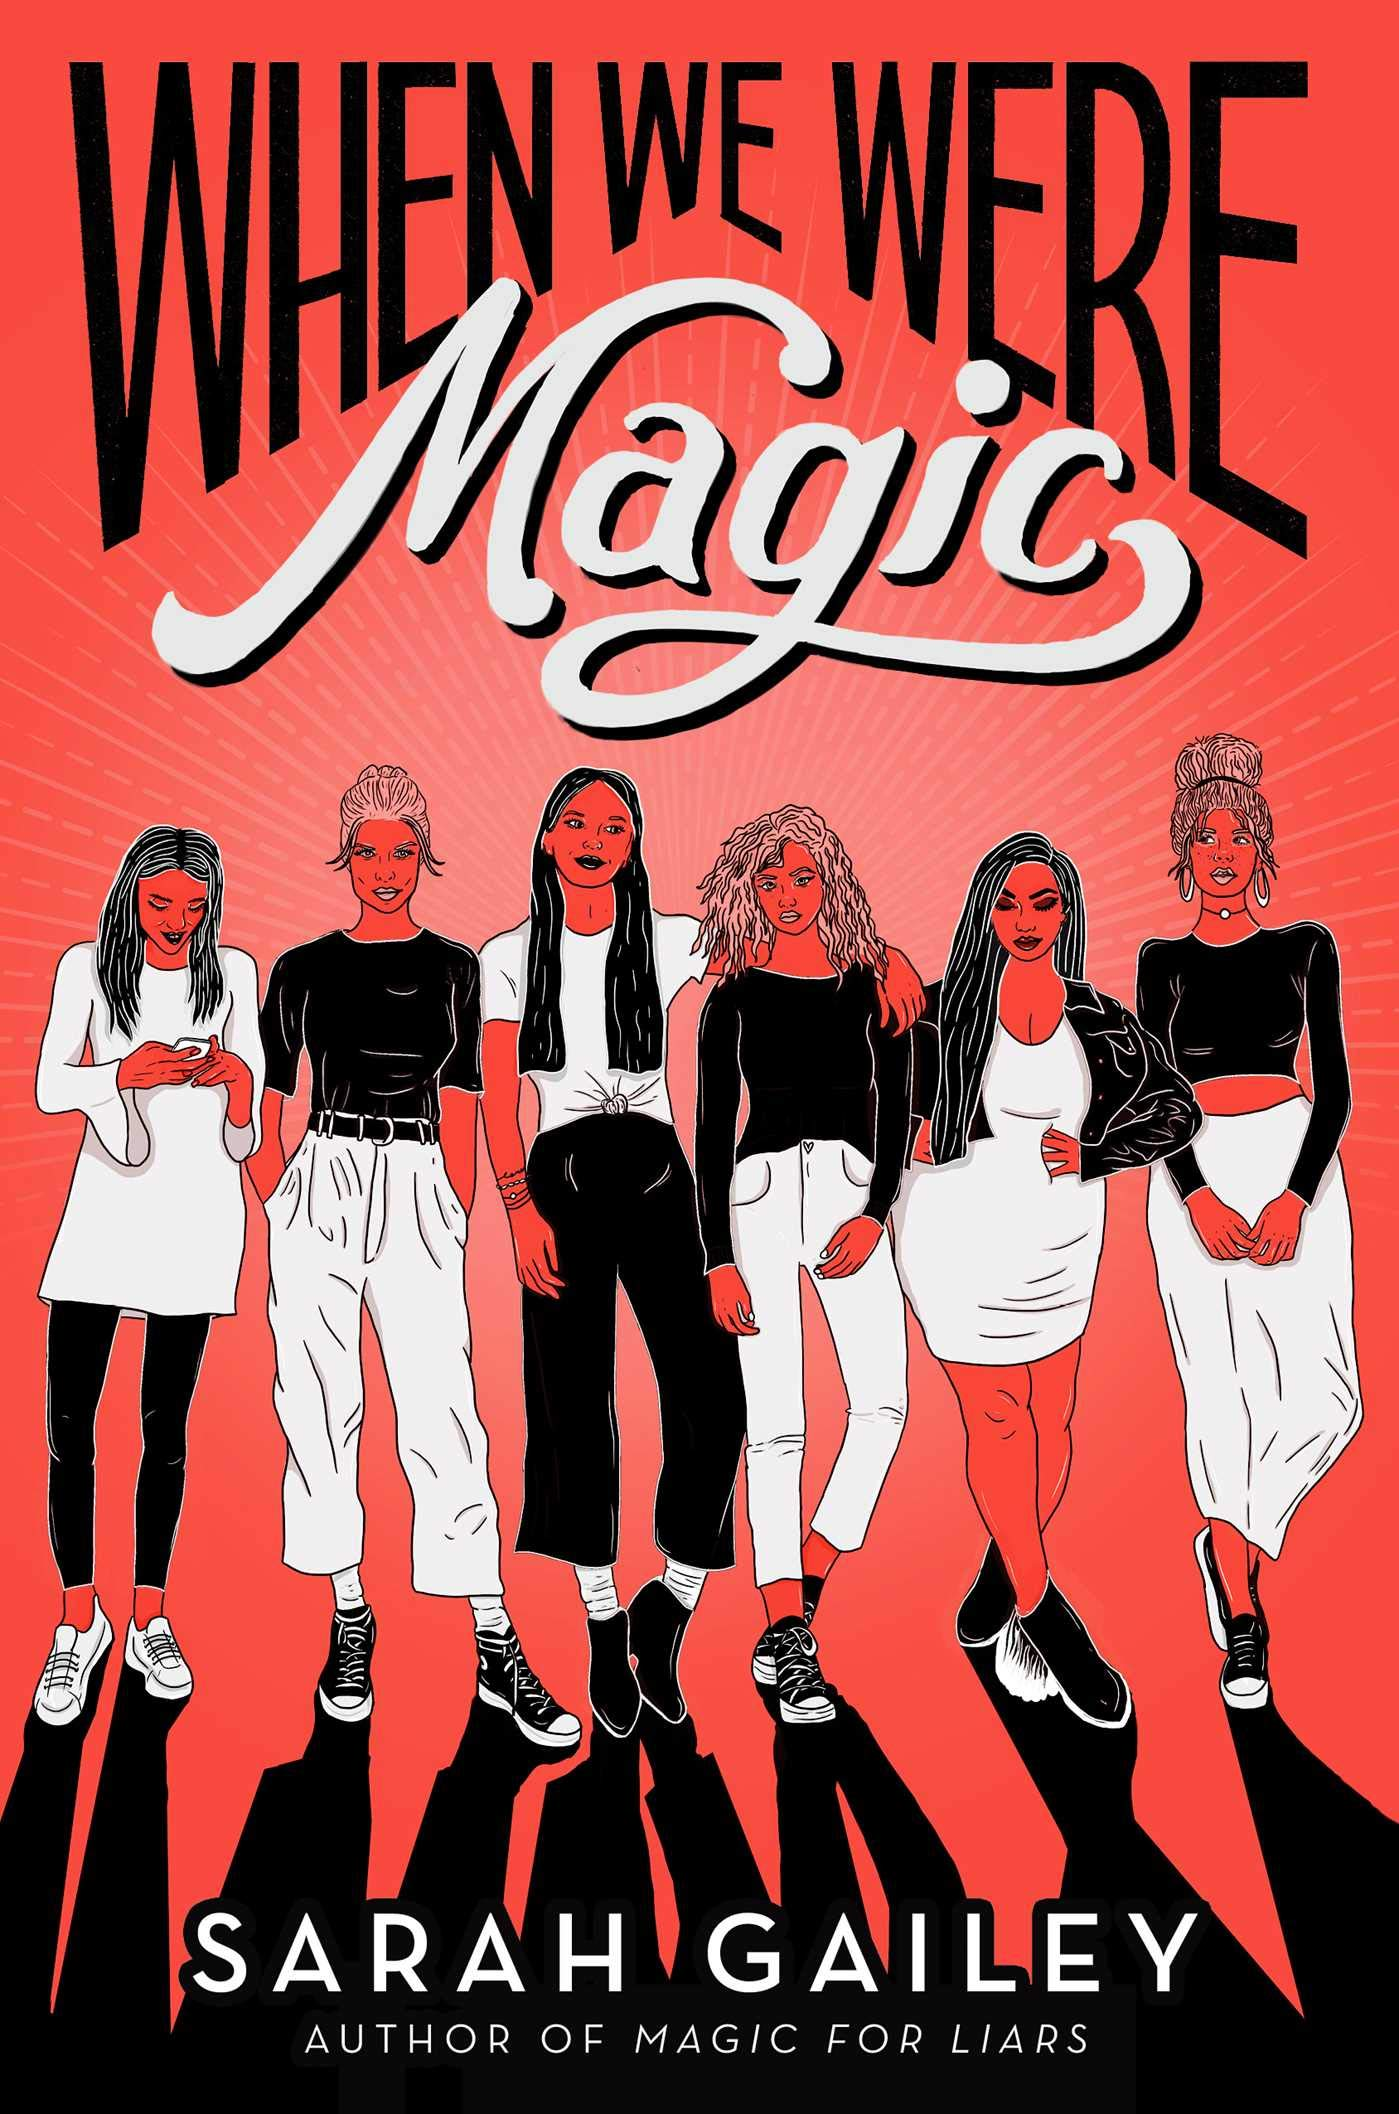 Amazon.com: When We Were Magic (9781534432871): Gailey, Sarah: Books